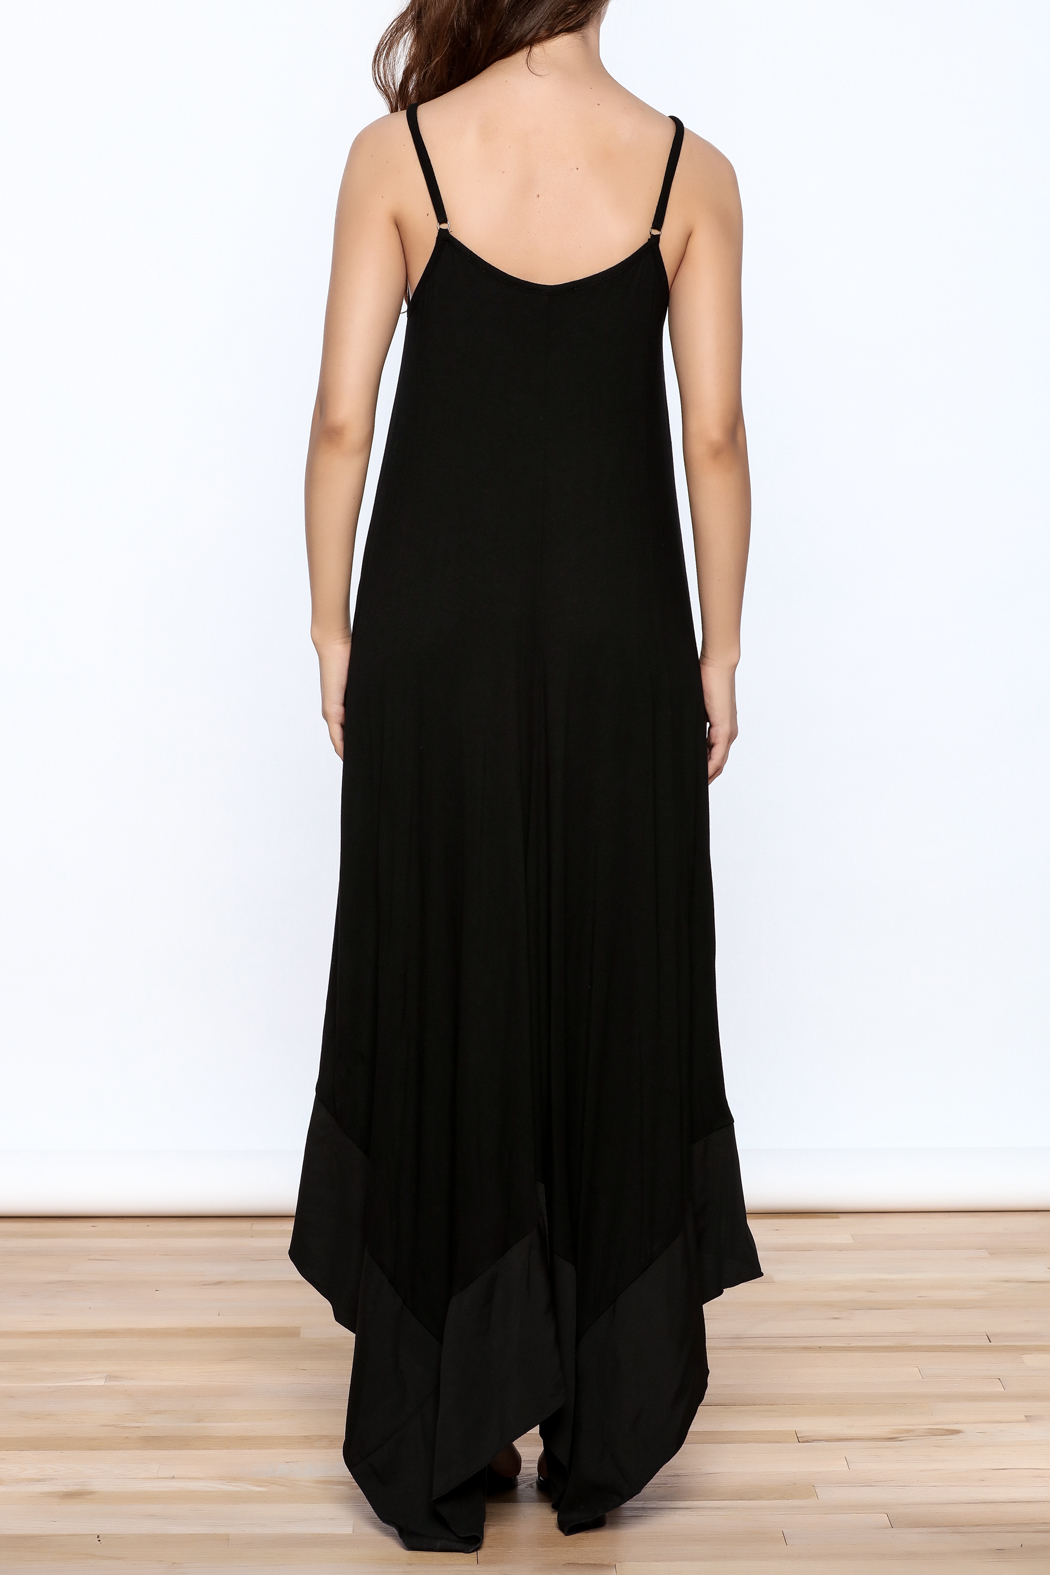 cq by cq Sleeveless Asymmetrical Dress - Back Cropped Image